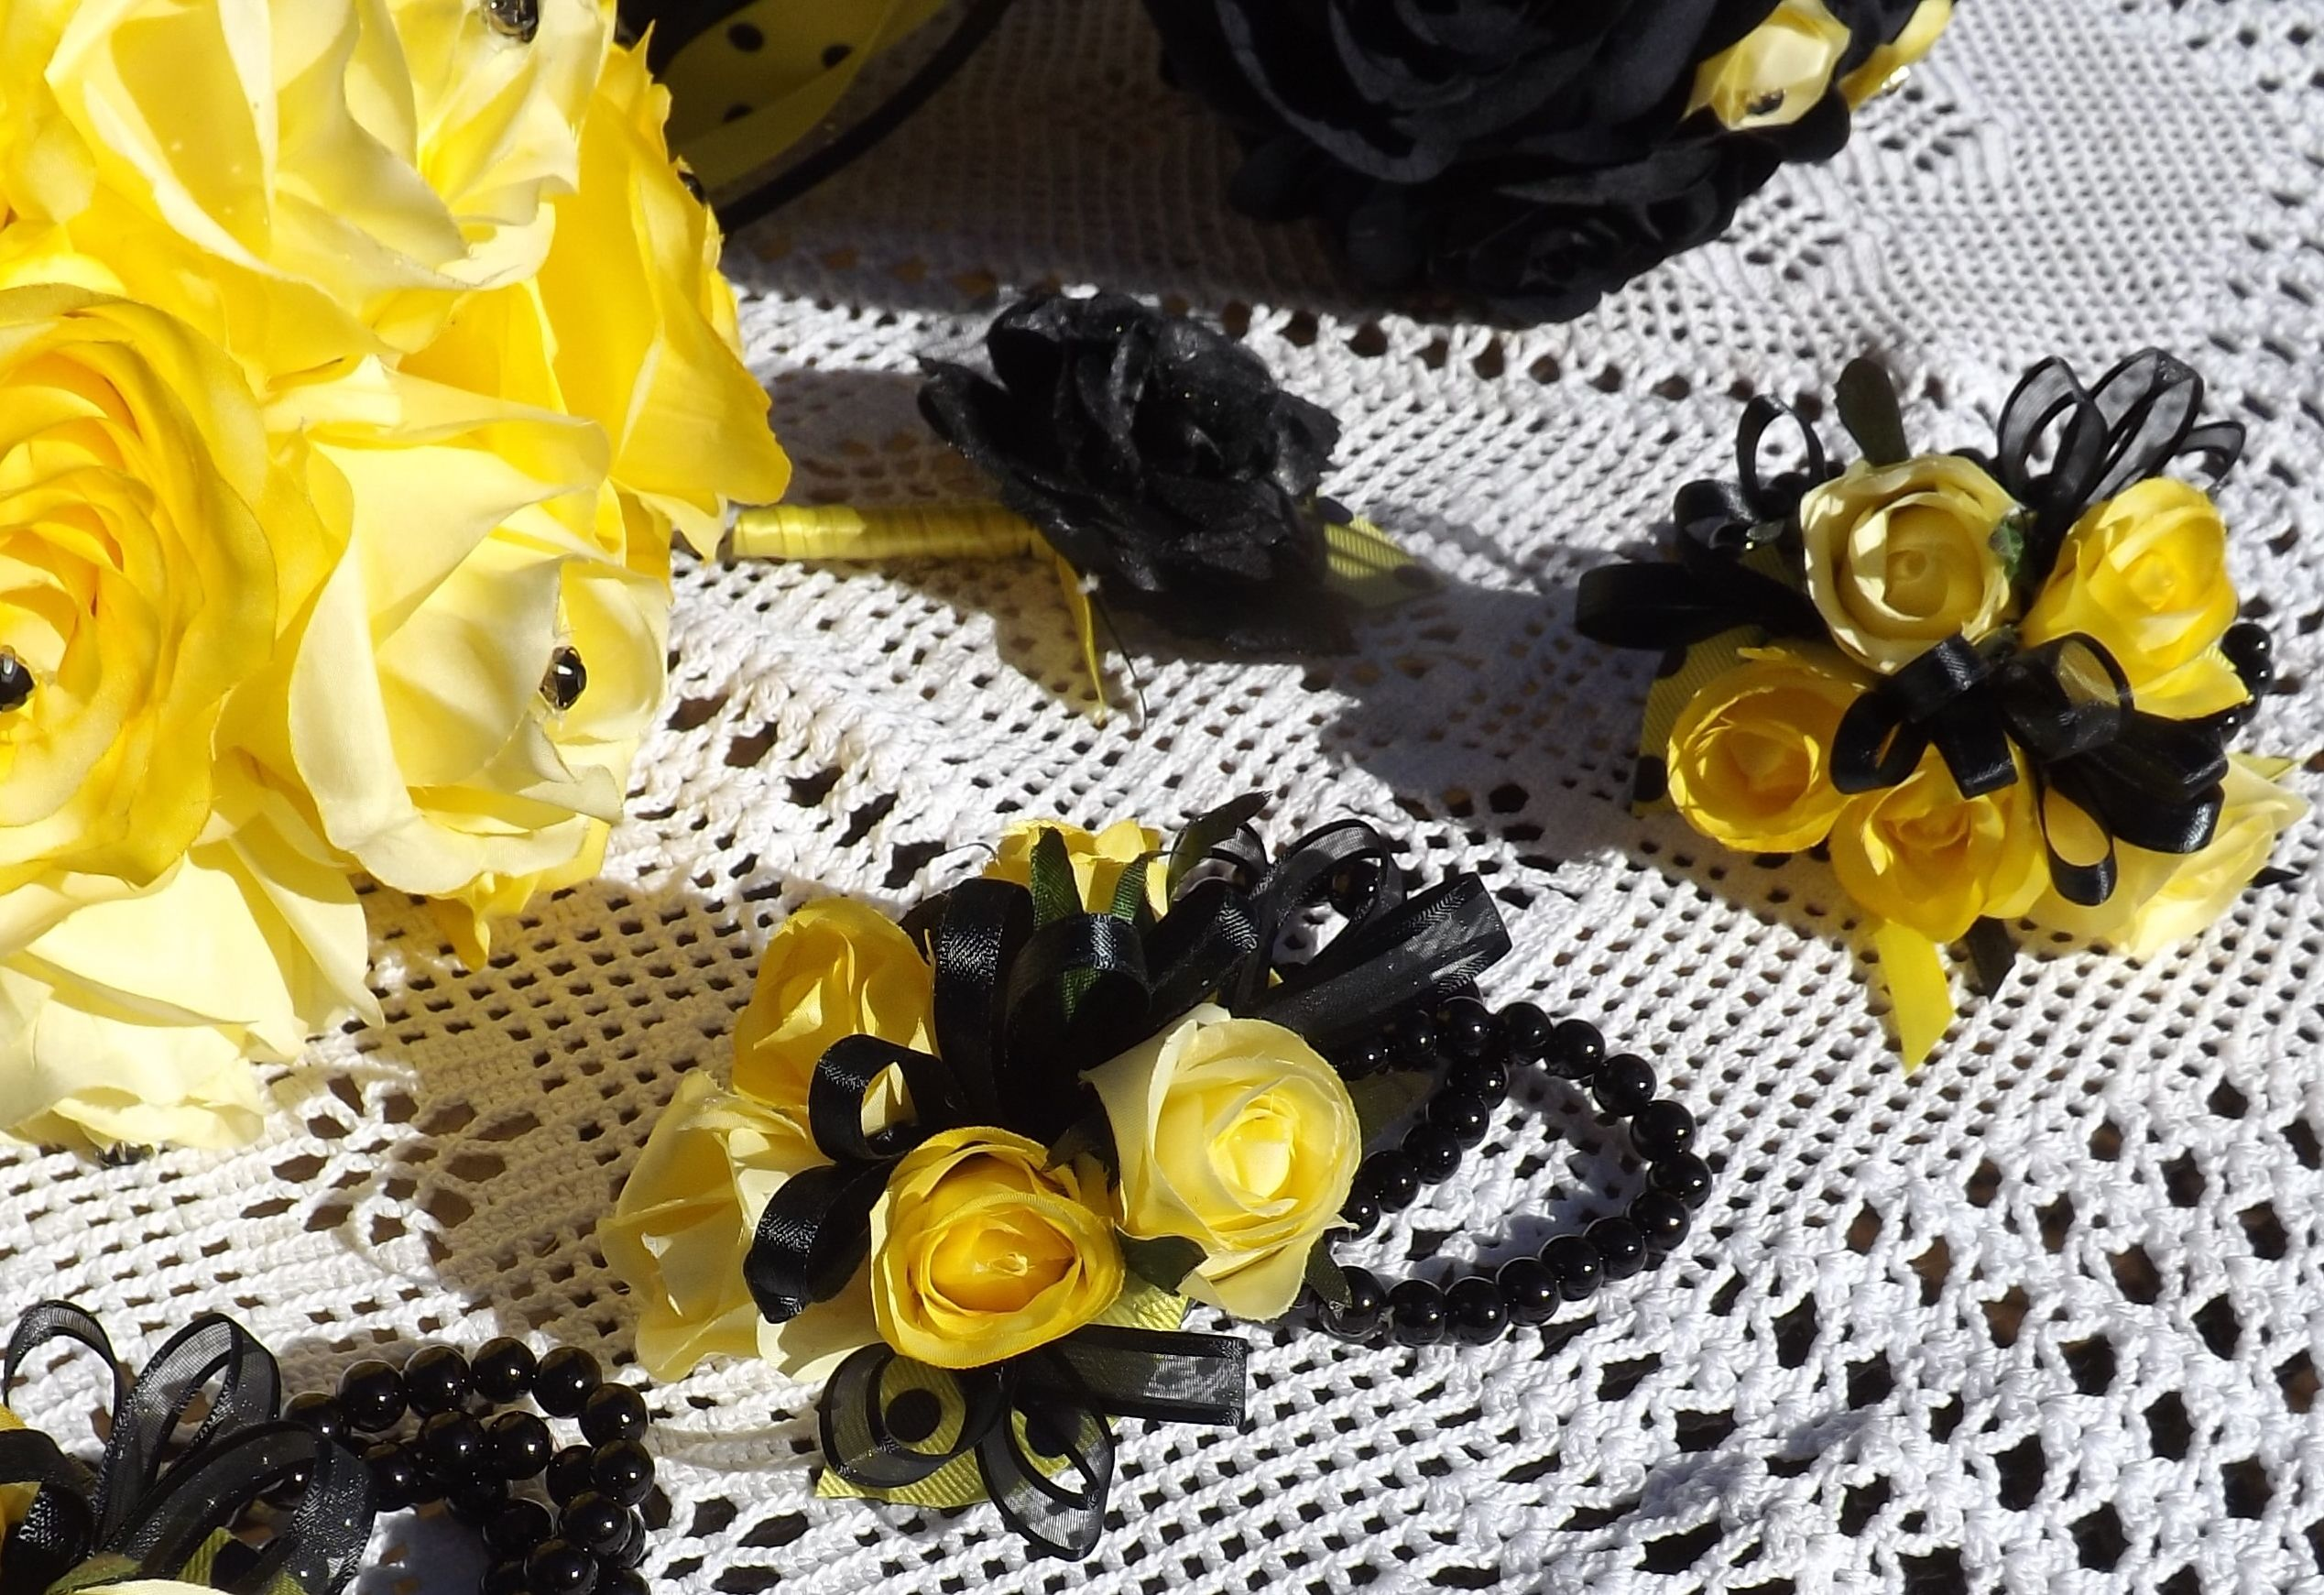 Batman Inspired Wedding Wrist Corsages Are Black And Yellow Roses